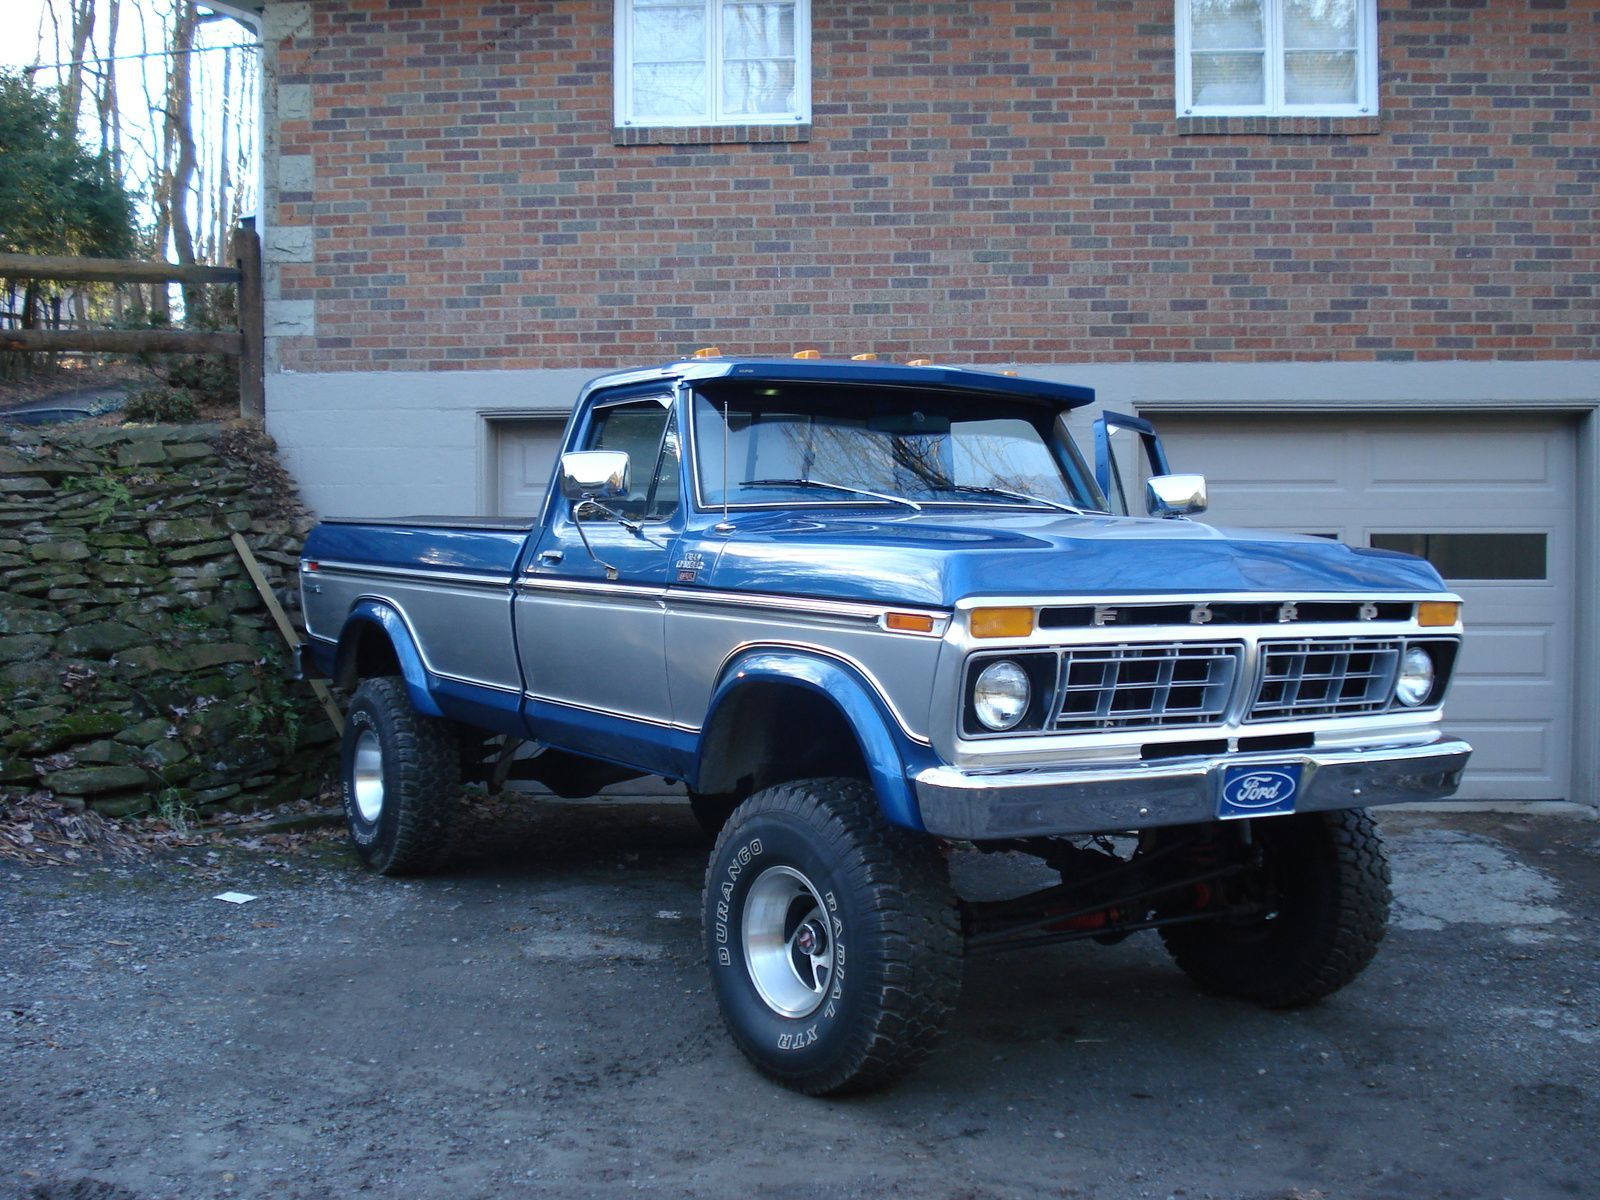 medium resolution of 1979ford truck pics 1976 ford f 150 1979 ford f 150 picture exterior